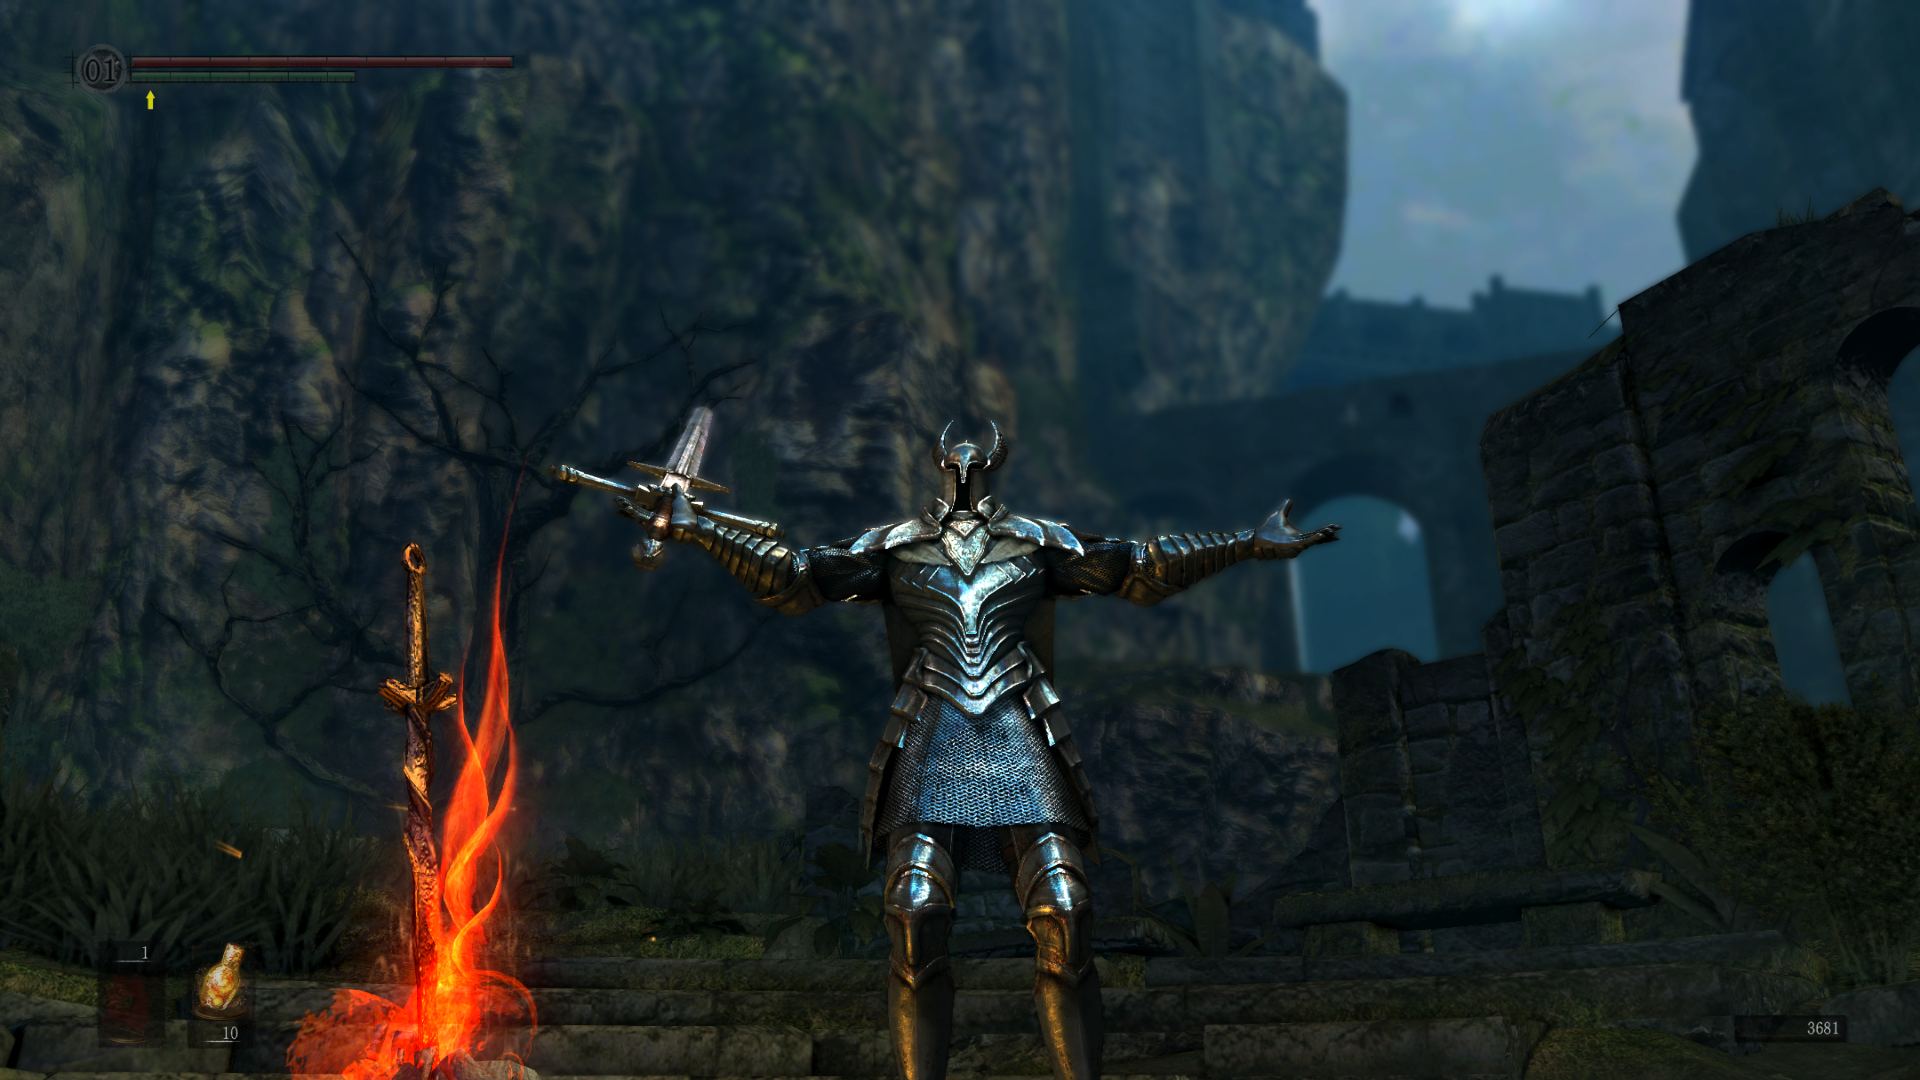 Dark Souls Wallpapers, Pictures, Images